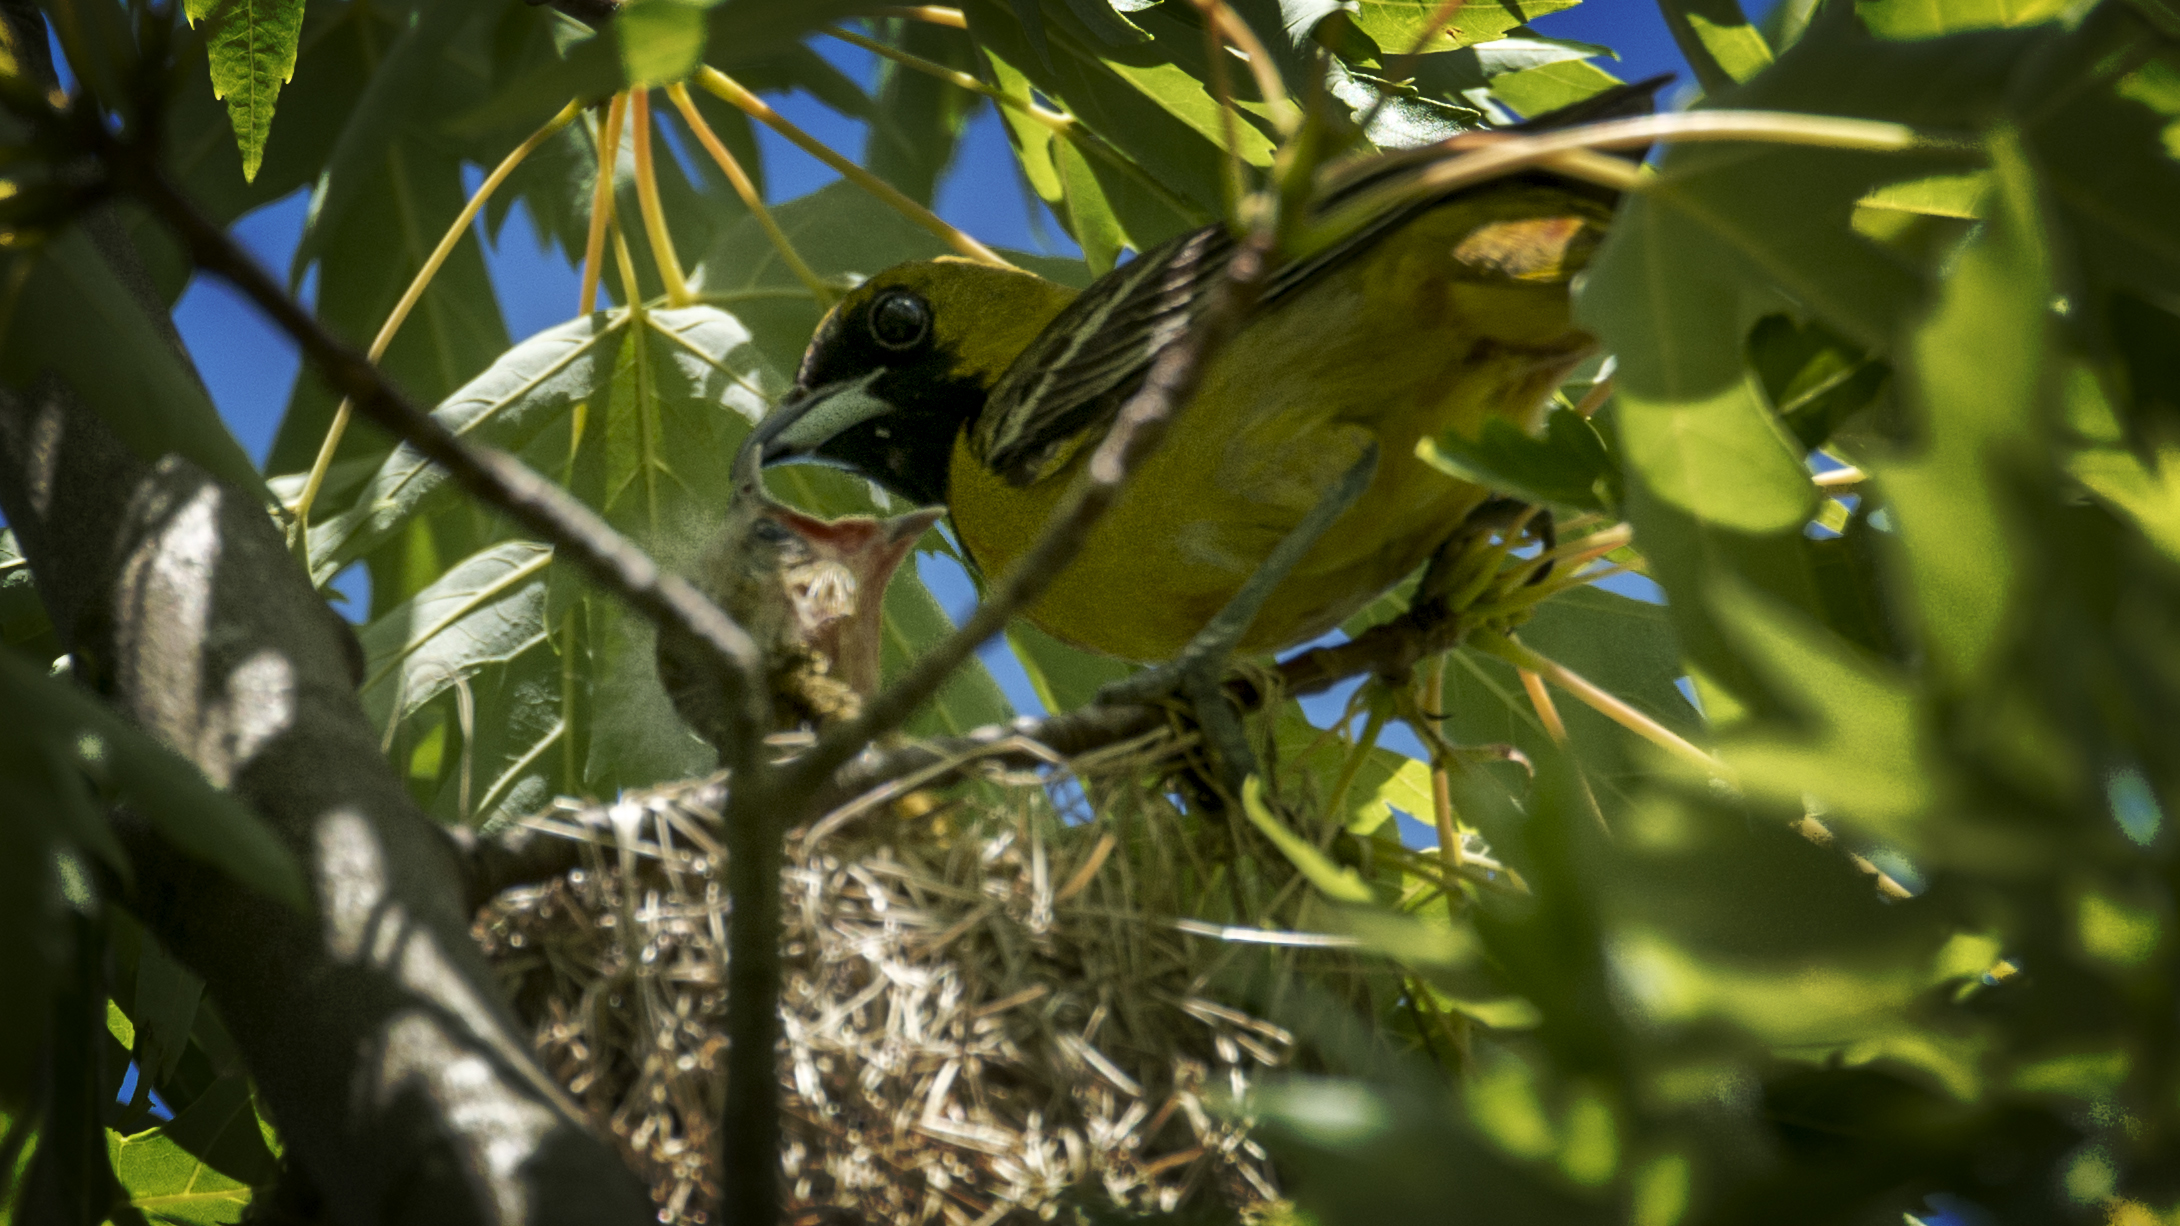 The male Orchard Oriole delivering some fresh insects to his young. There were at least two babies in this nest.